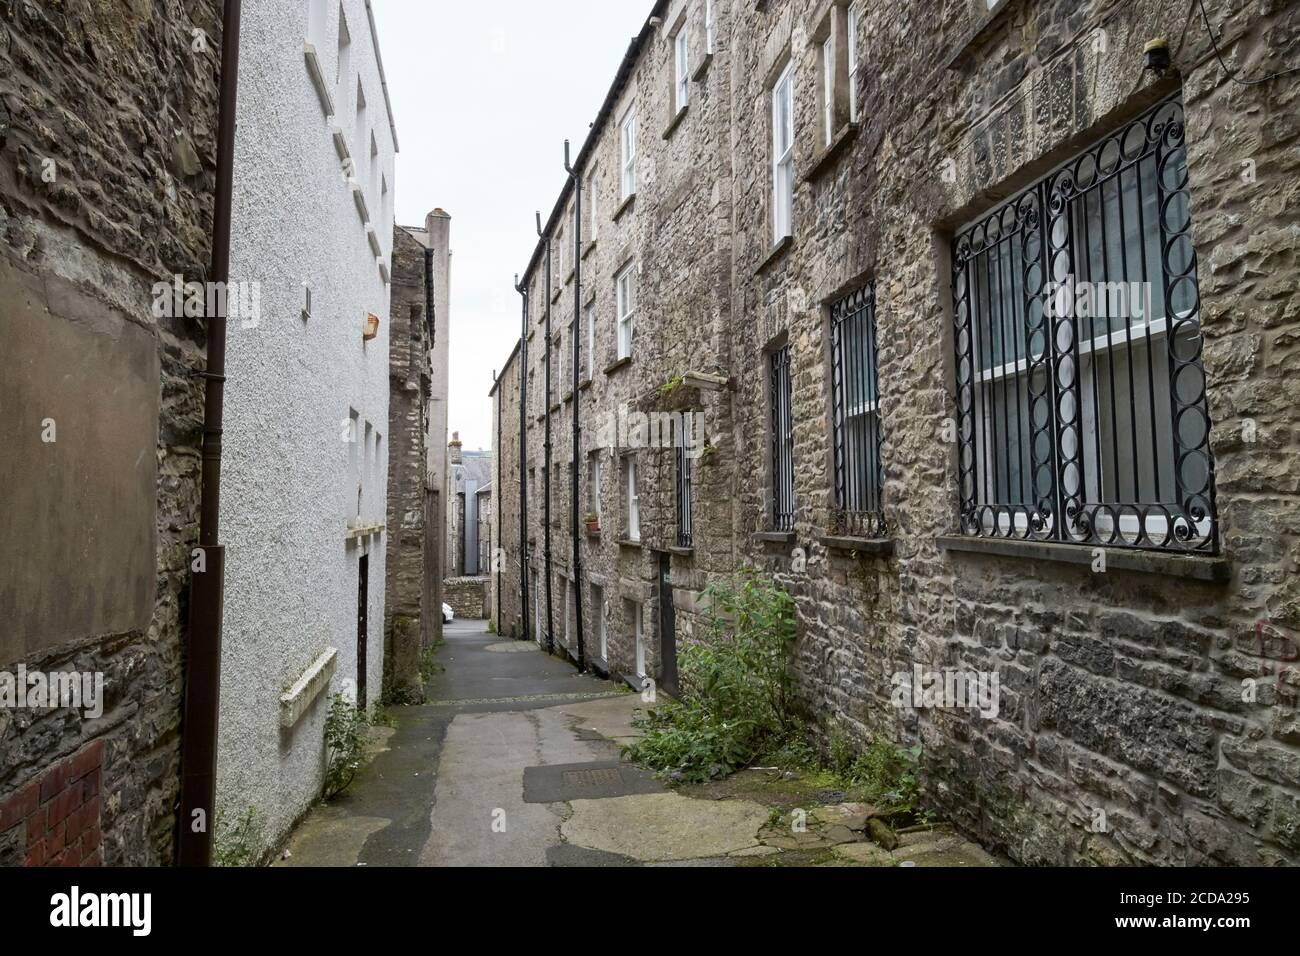 Liberty House yard Kendal cumbria angleterre royaume-uni Banque D'Images